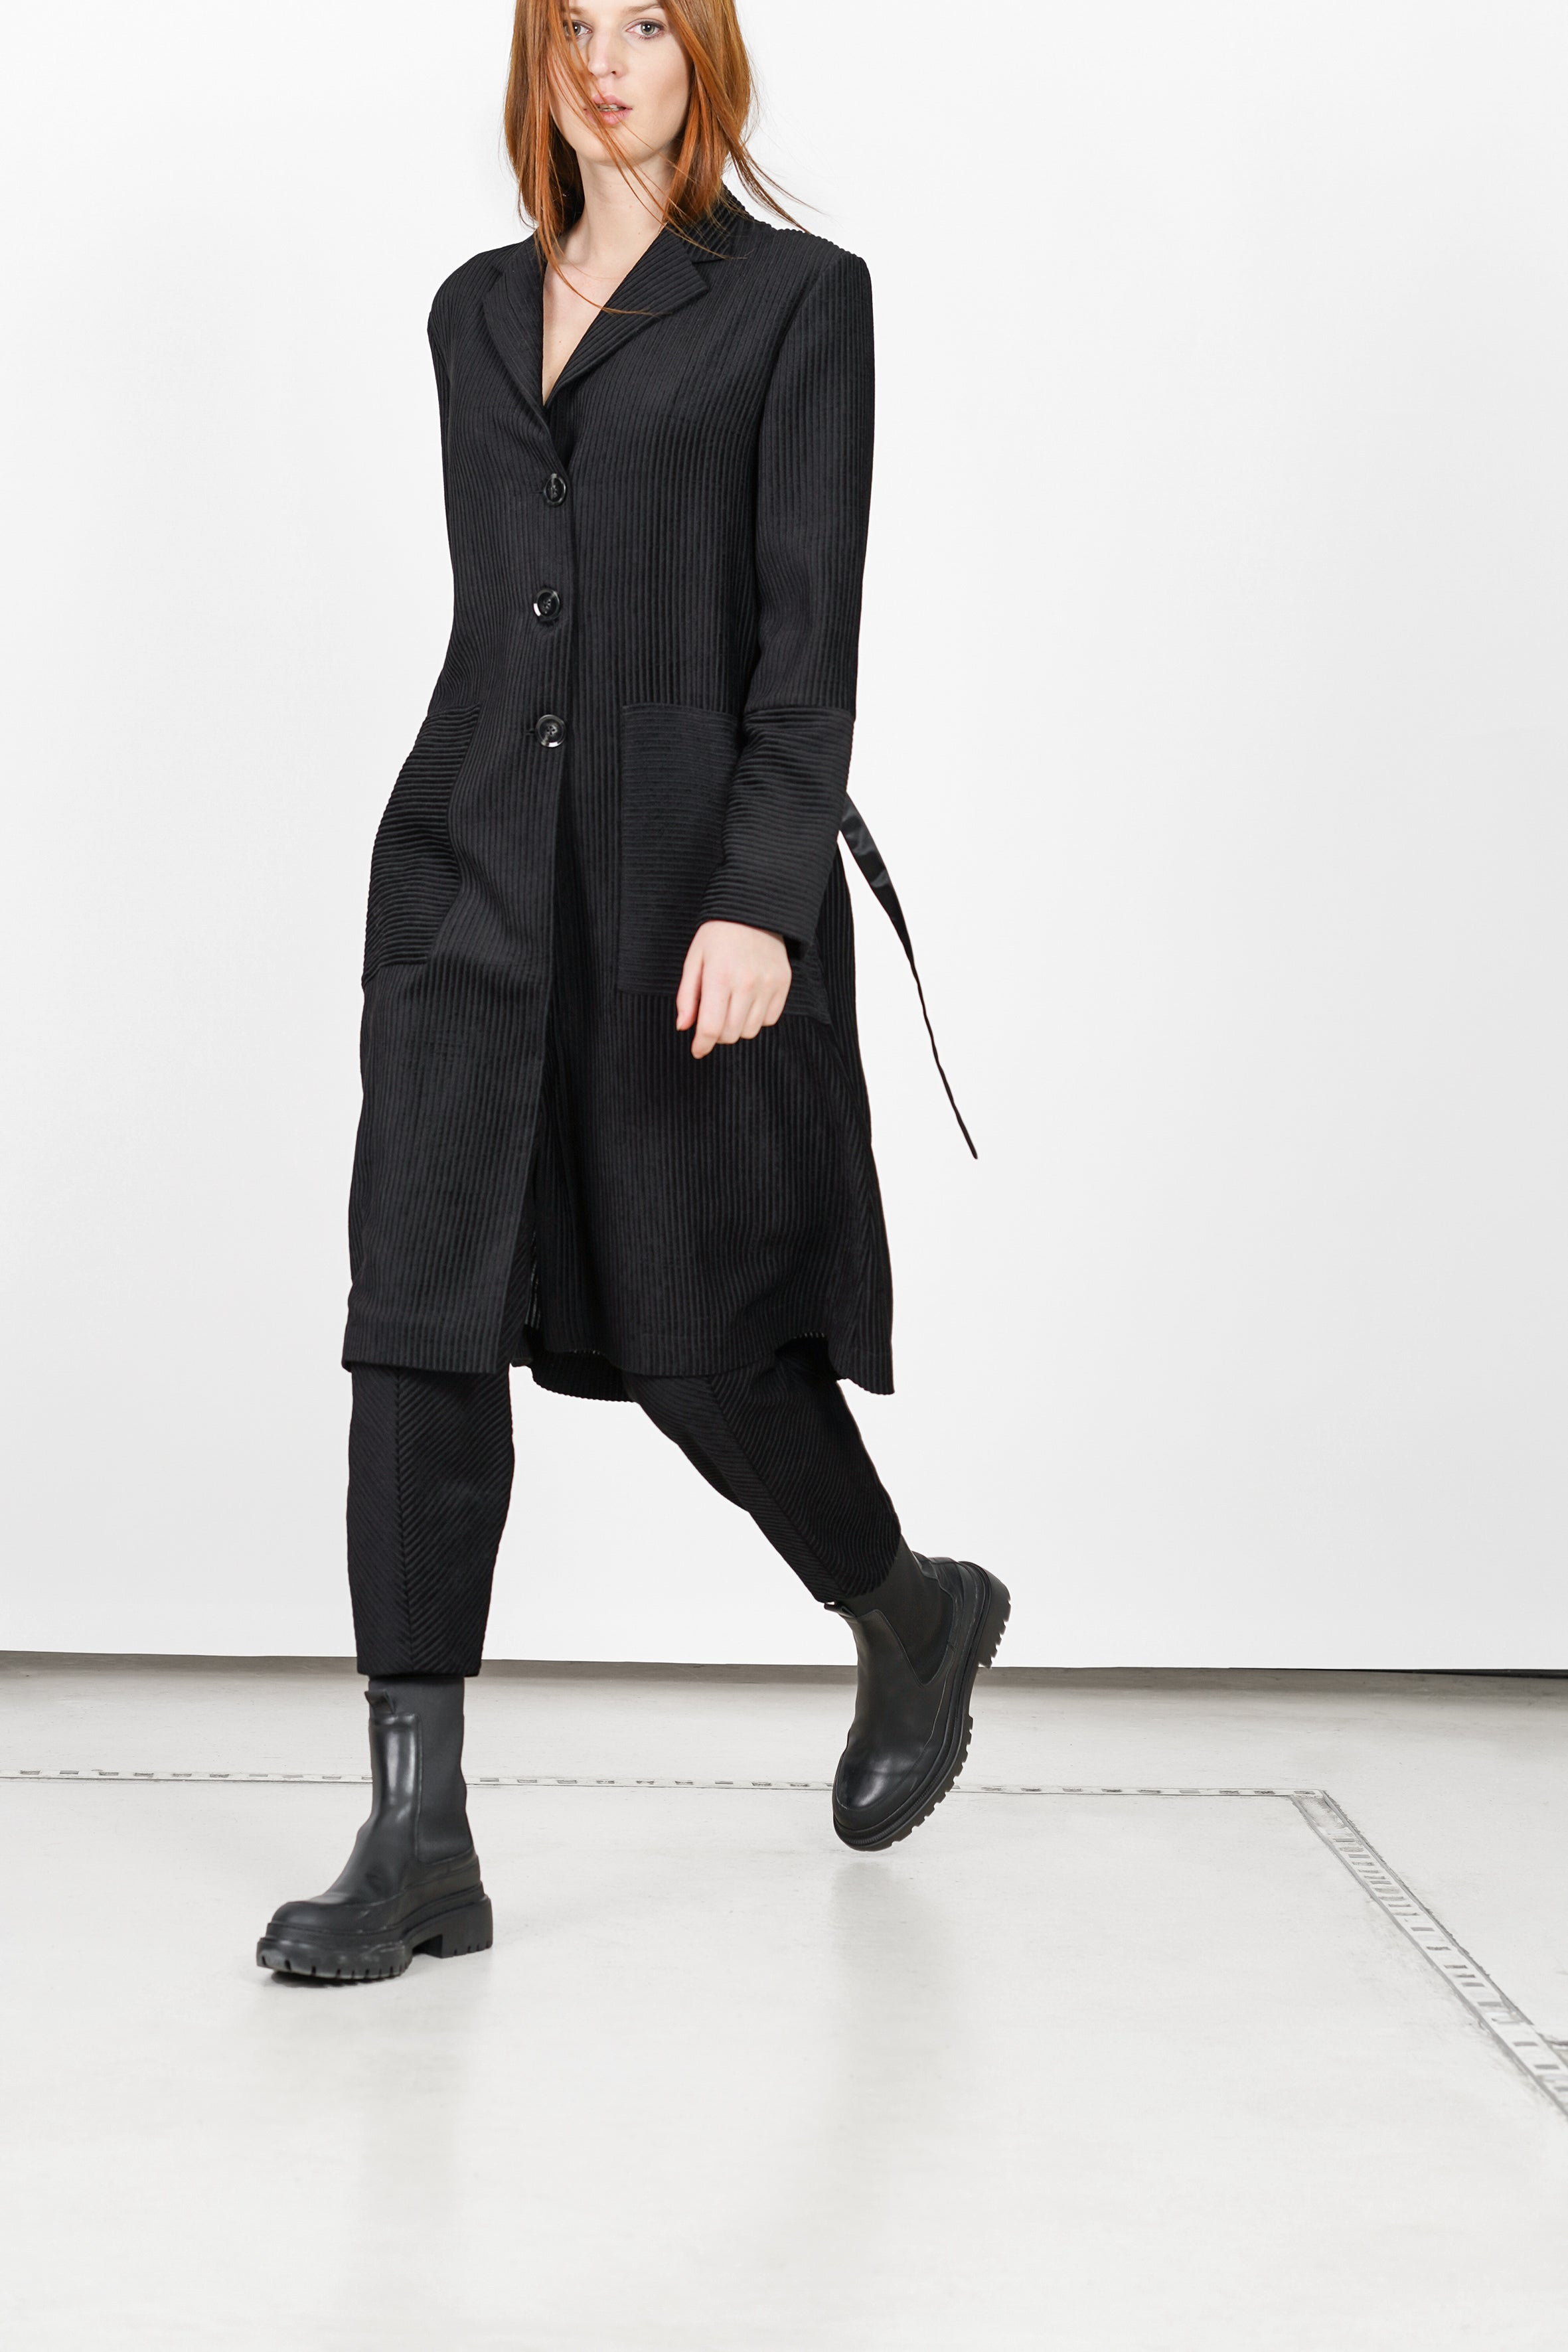 Annette Gortz Sal Jacket at Jophiel